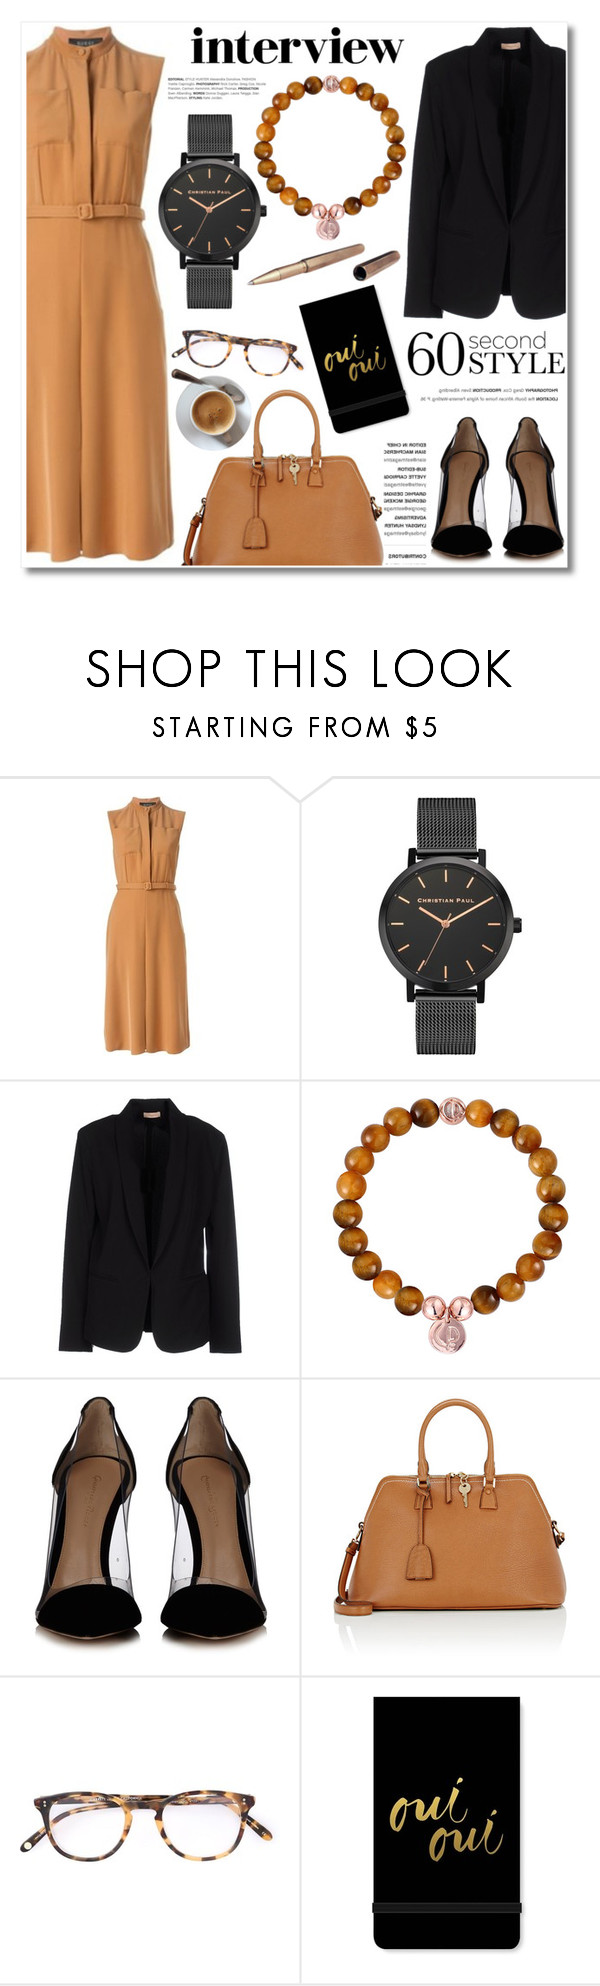 """""""60-Second Style: Job Interview"""" by christianpaul ❤ liked on Polyvore featuring Gucci, Maesta, Gianvito Rossi, Maison Margiela, Garrett Leight, Fringe, ystudio, contestentry, jobinterview and 60secondstyle"""